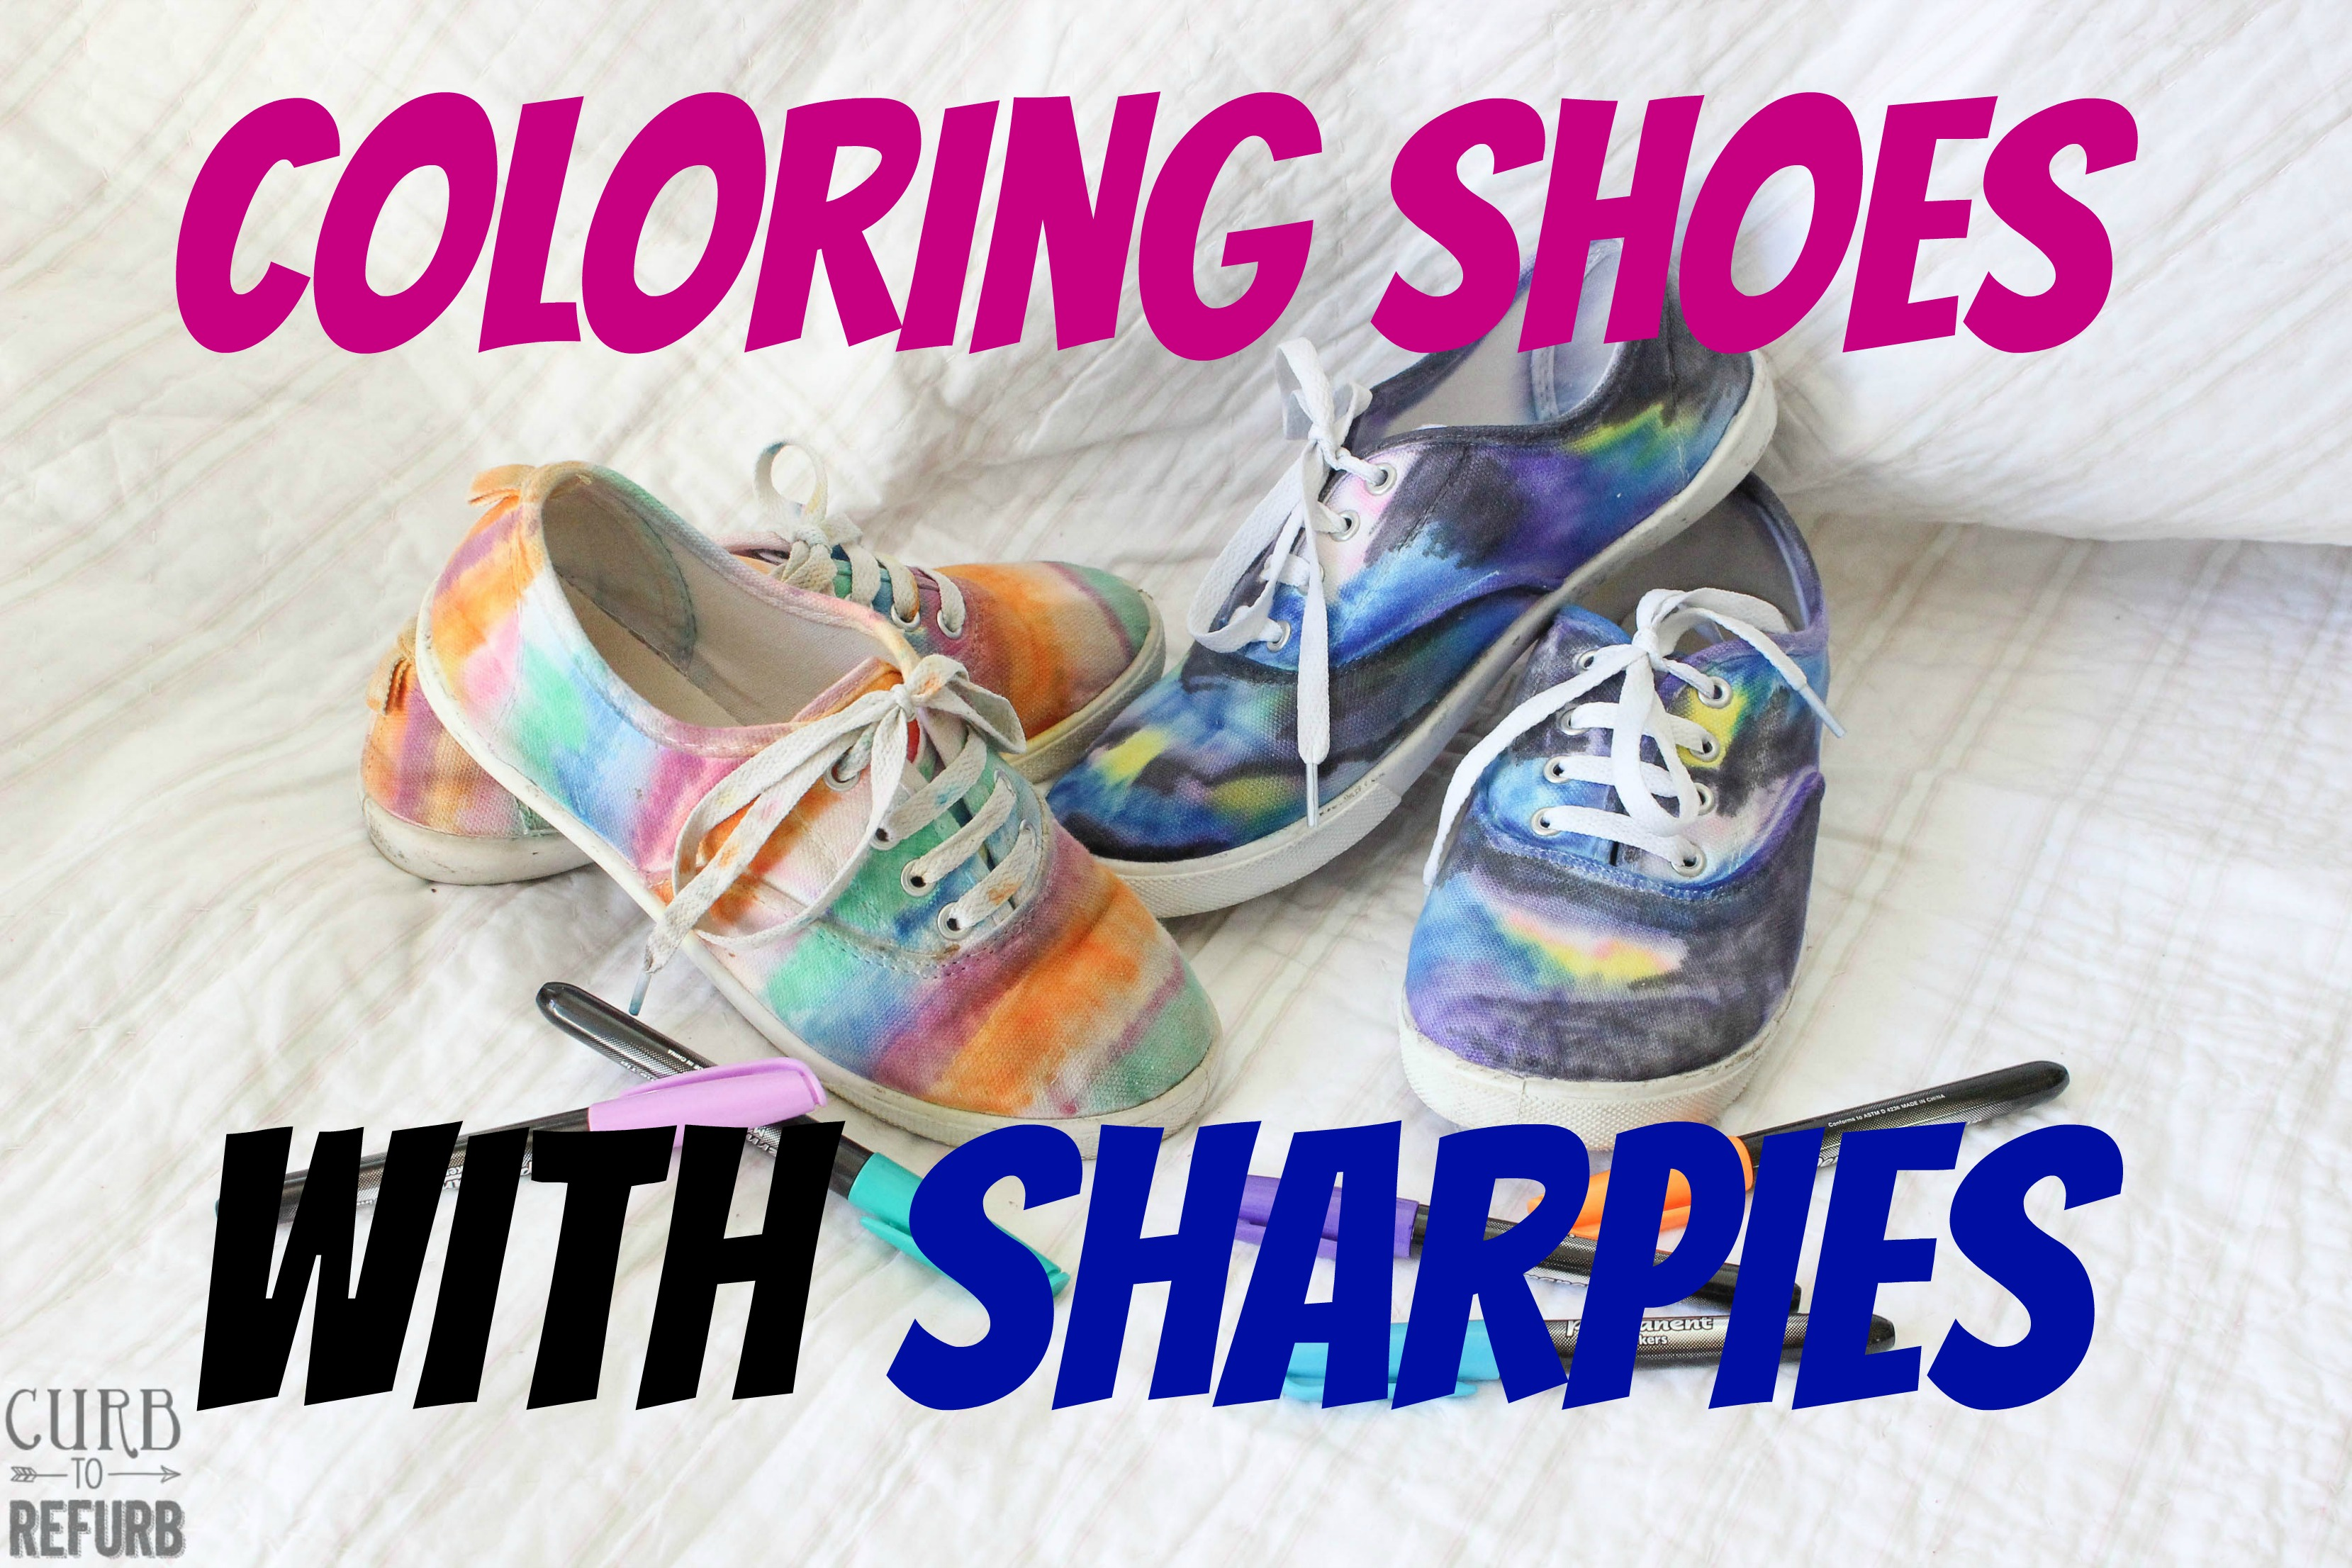 Coloring Shoes With Sharpies - CURB TO REFURB